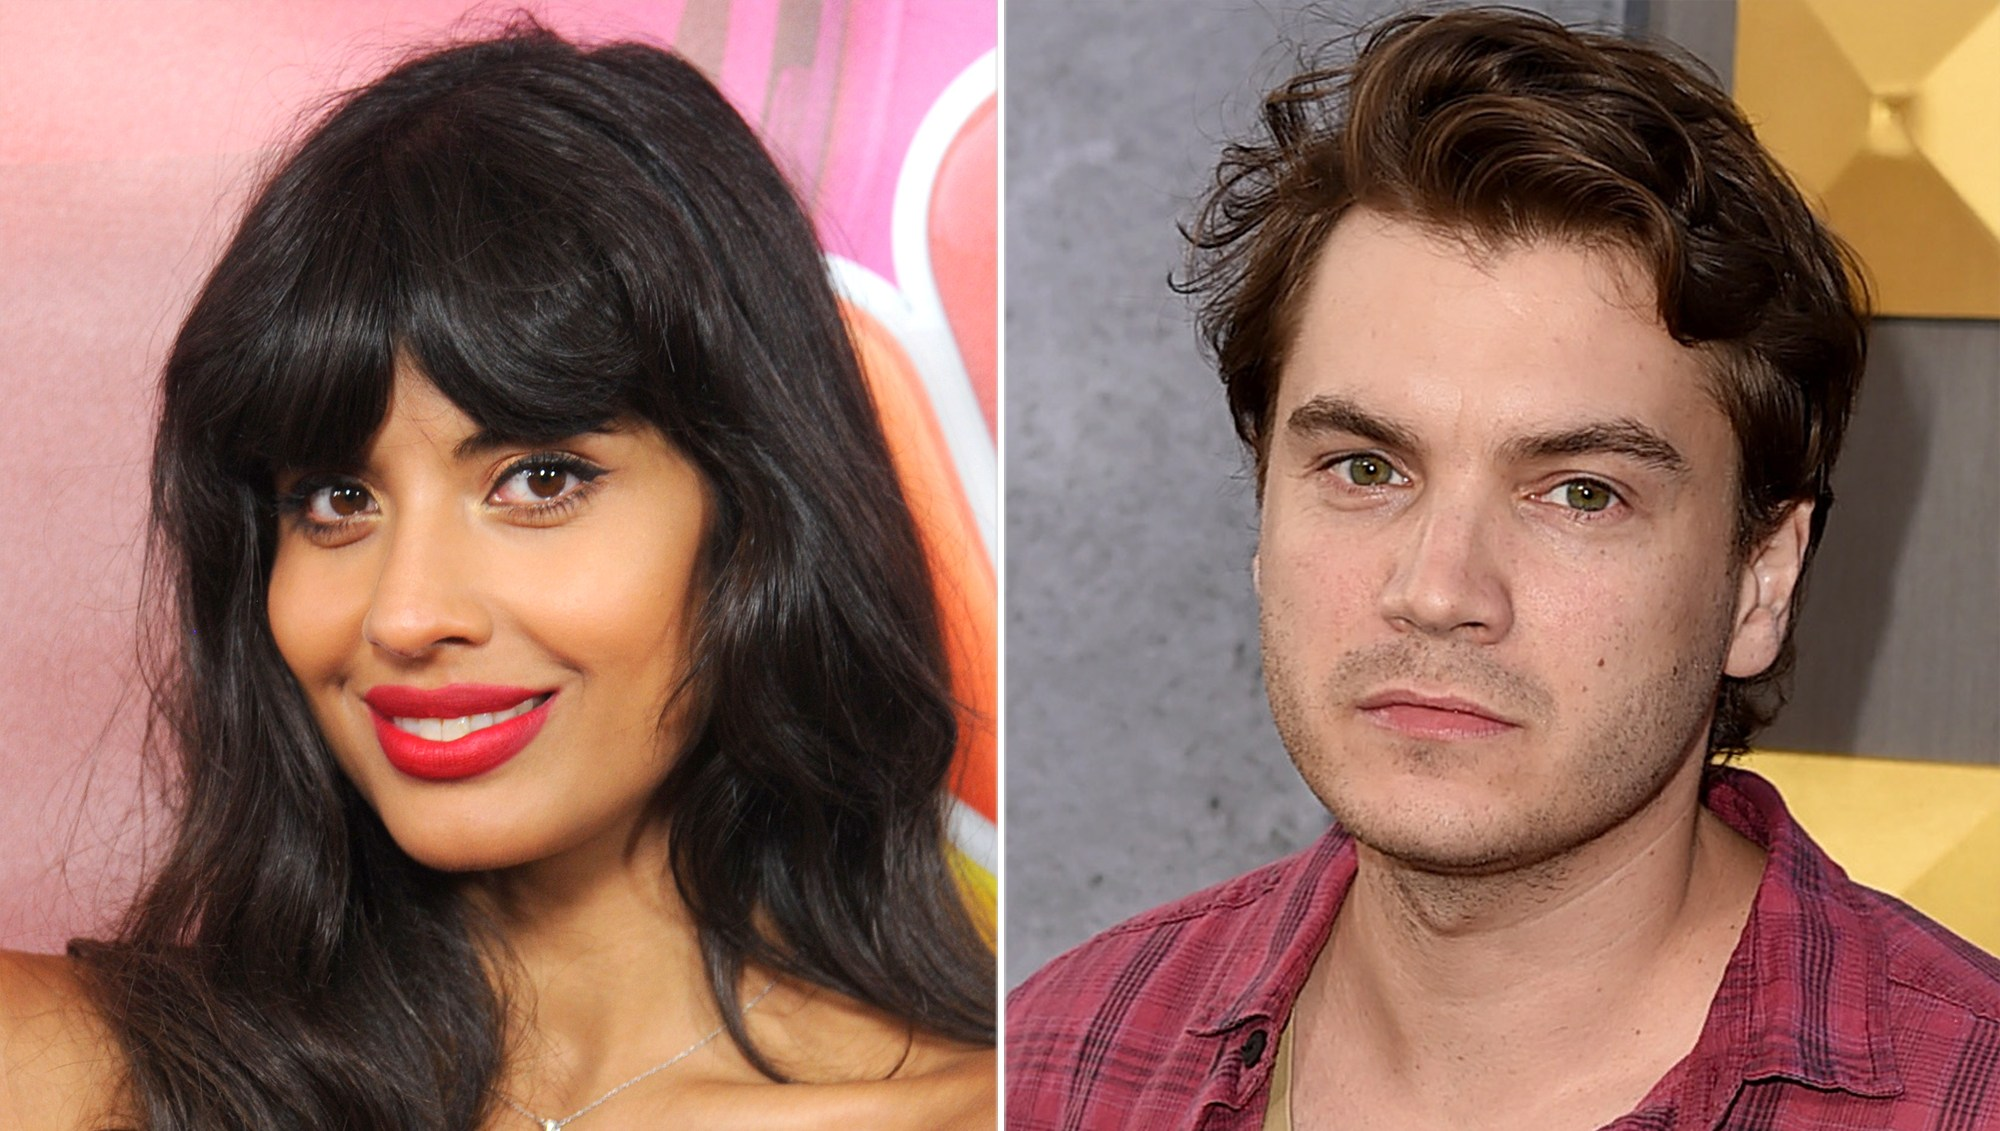 Jameela Jamil and Emile Hirsch